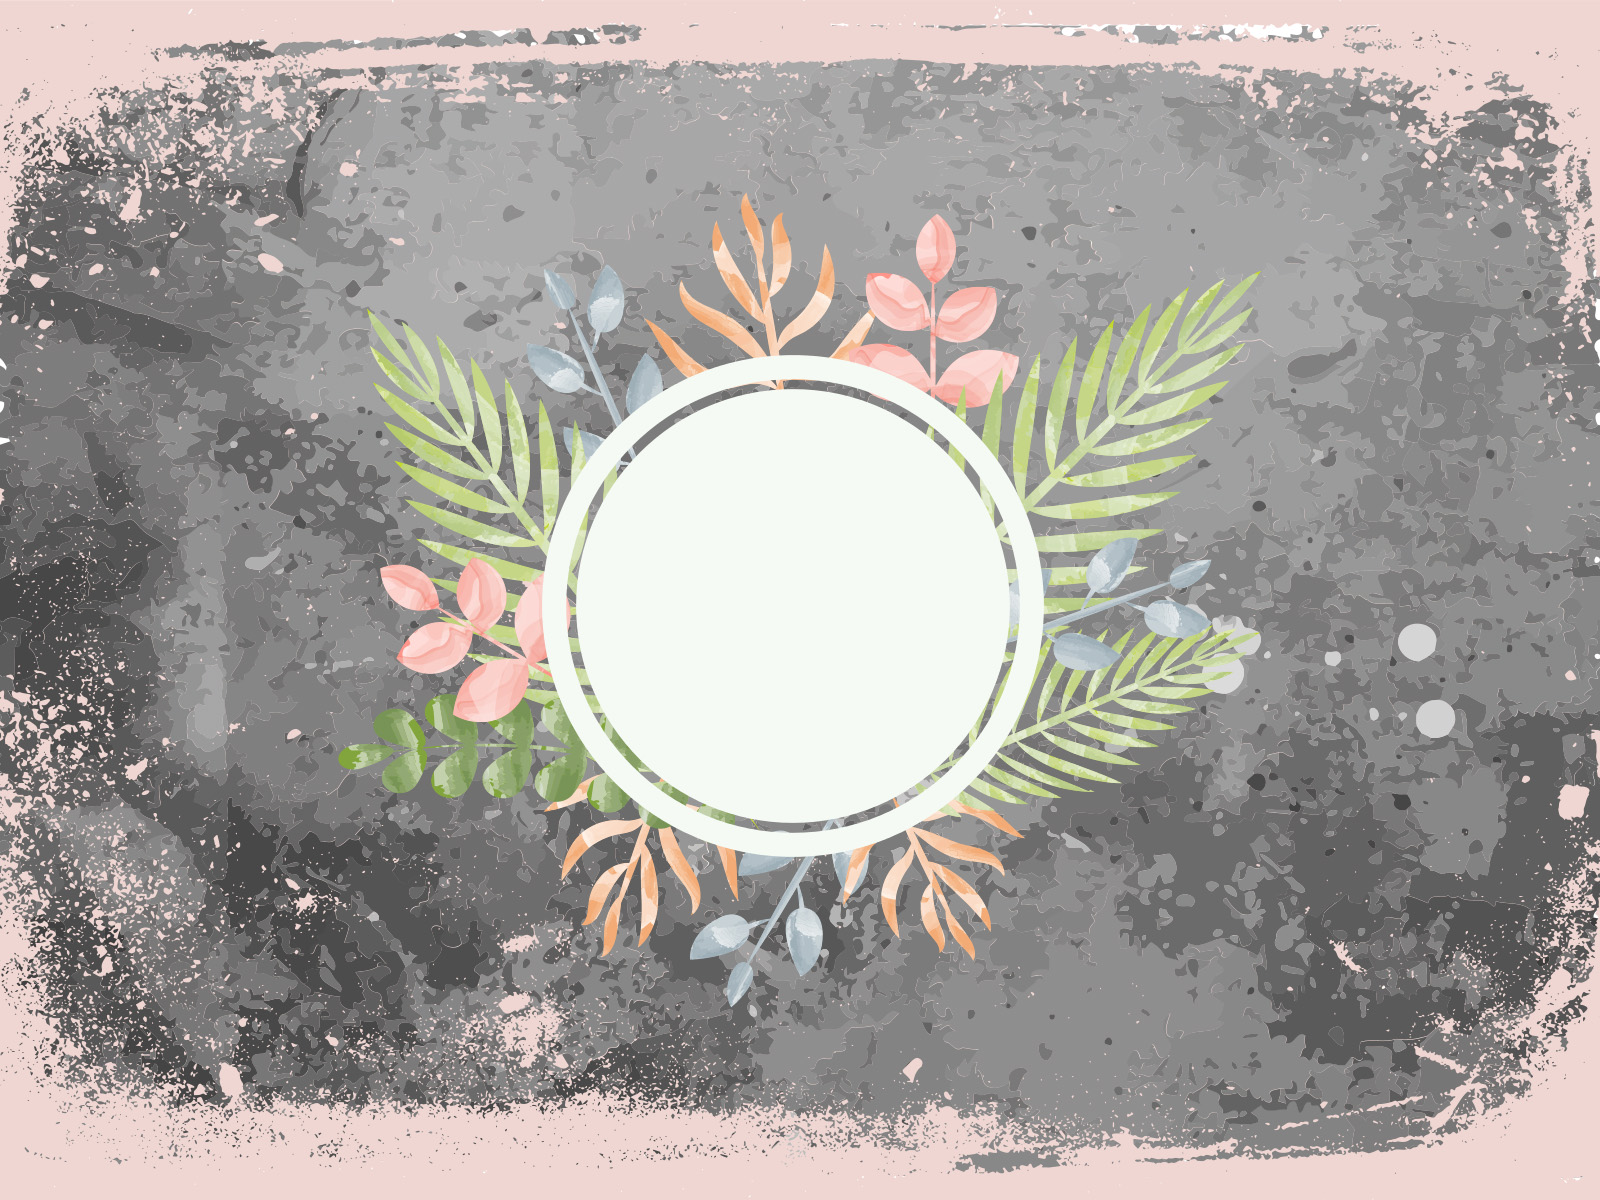 Cute Red Blue And Yellow Hd Graphic Flowers Wallpaper Flower Frame Backgrounds Border Amp Frames Green Grey